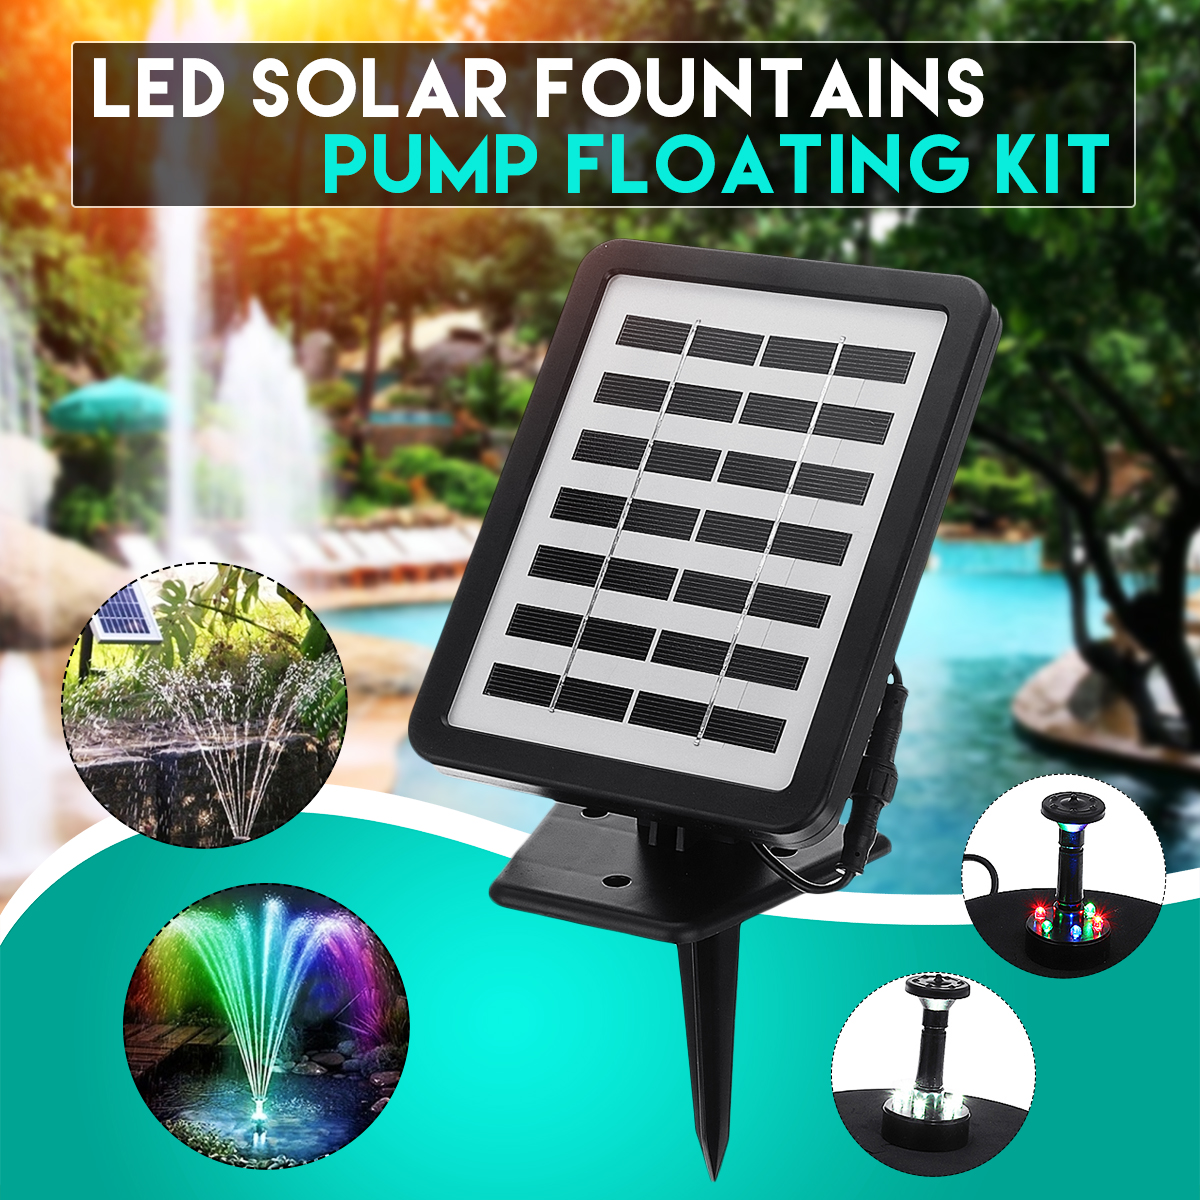 1.5W 180L/H LED Solar Fountains Pump Pond Pool Fish Tank Bird Bath Water Pump built in Battery Floating Kit with 4 Sprinkler Heads